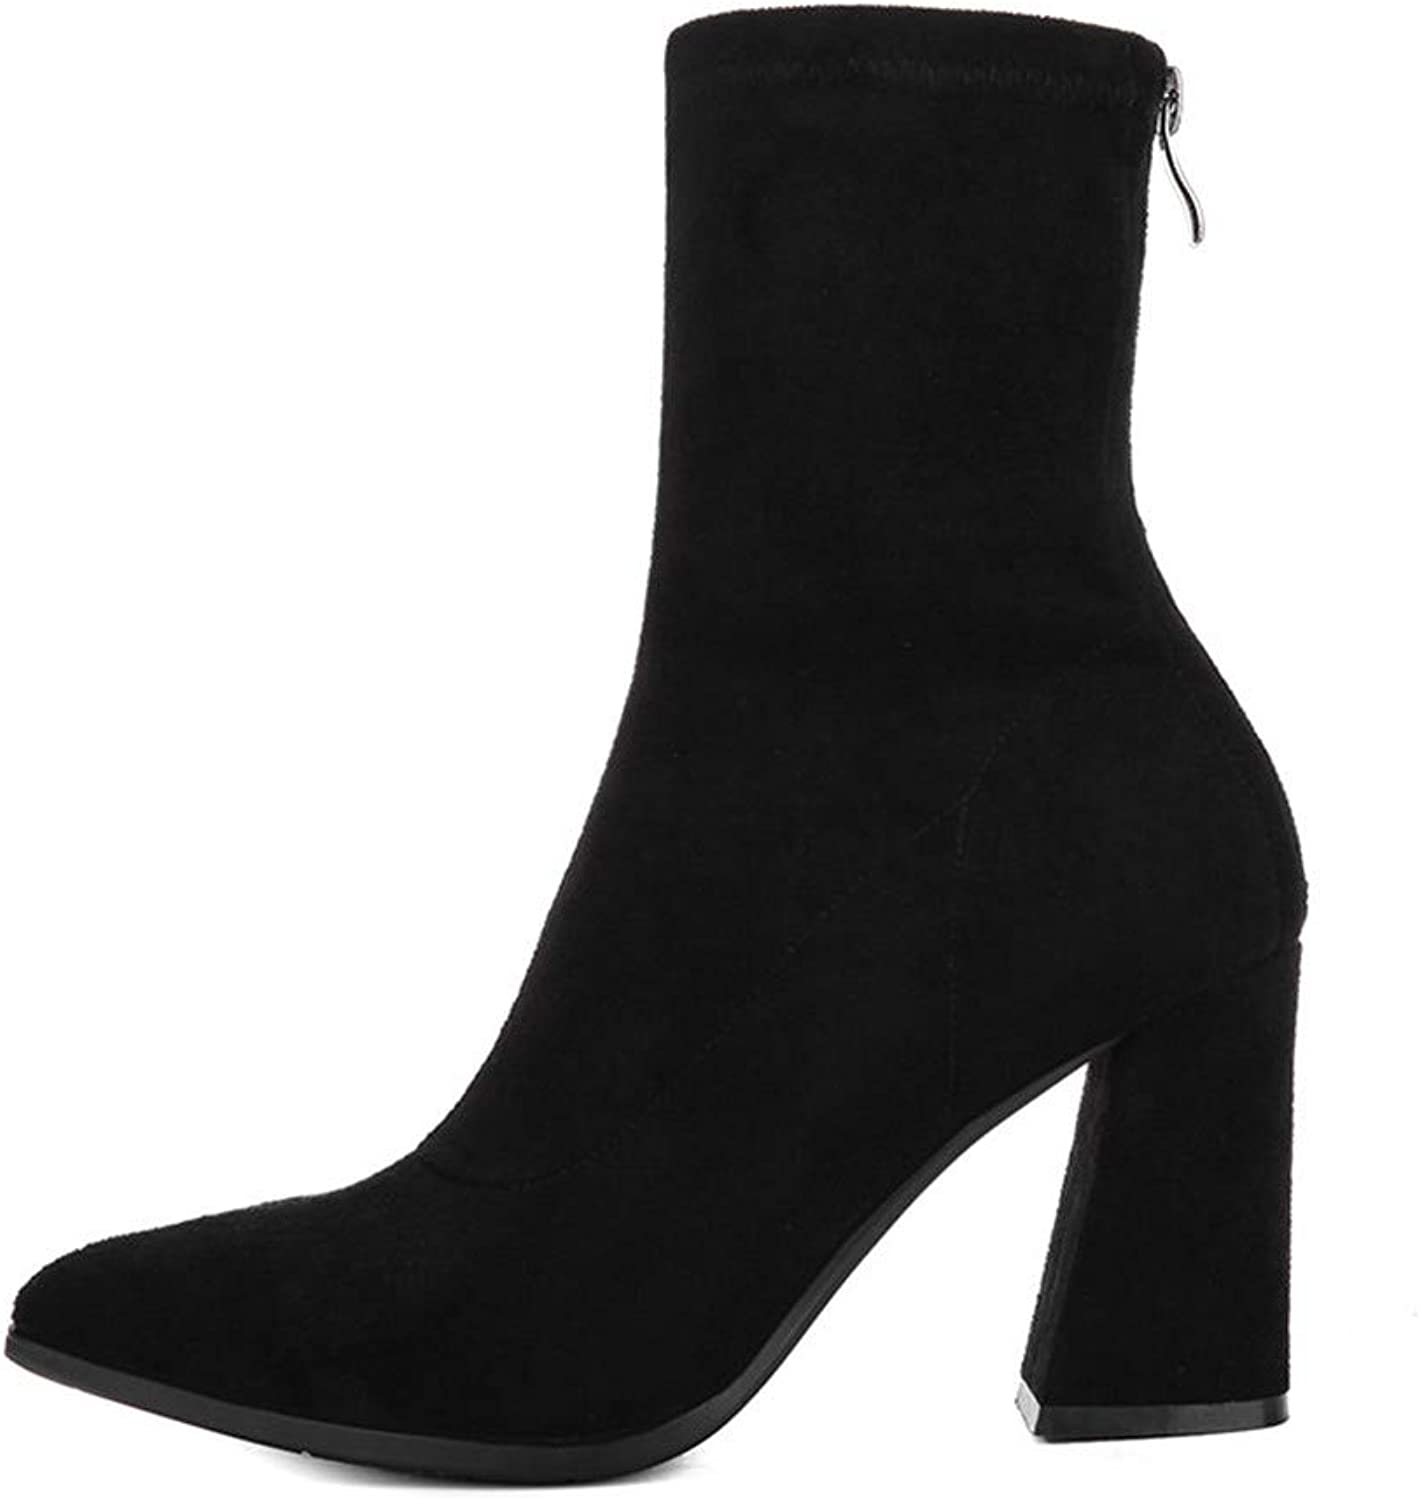 Women's High Heel and Ankle Boots Martin Boots Thick with Pointed Scrubs Suede European and American Women's Boots Back Zipper